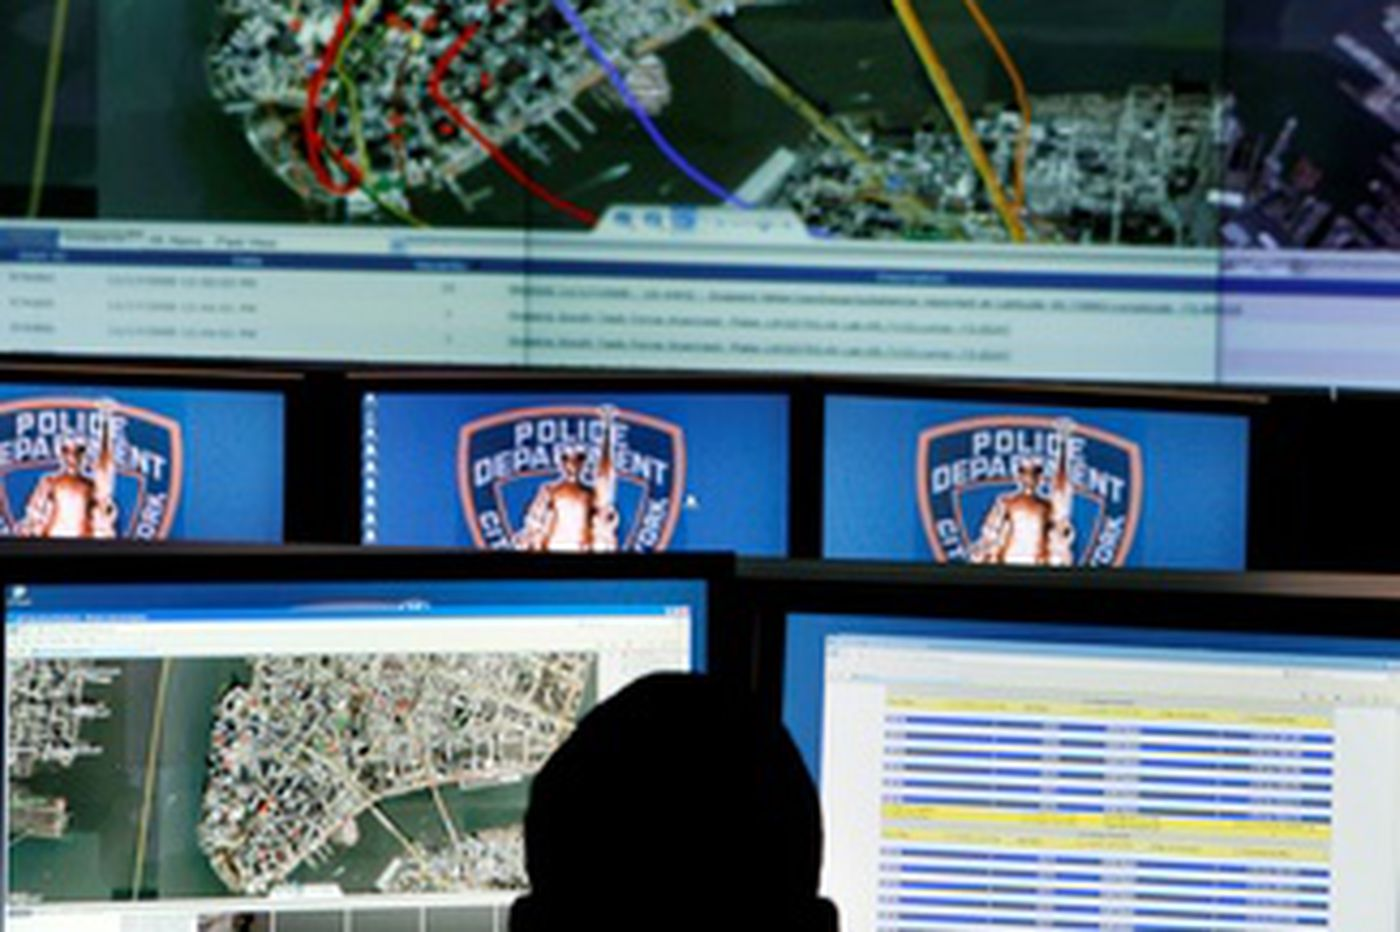 High-tech center designed to fight terrorism in N.Y.